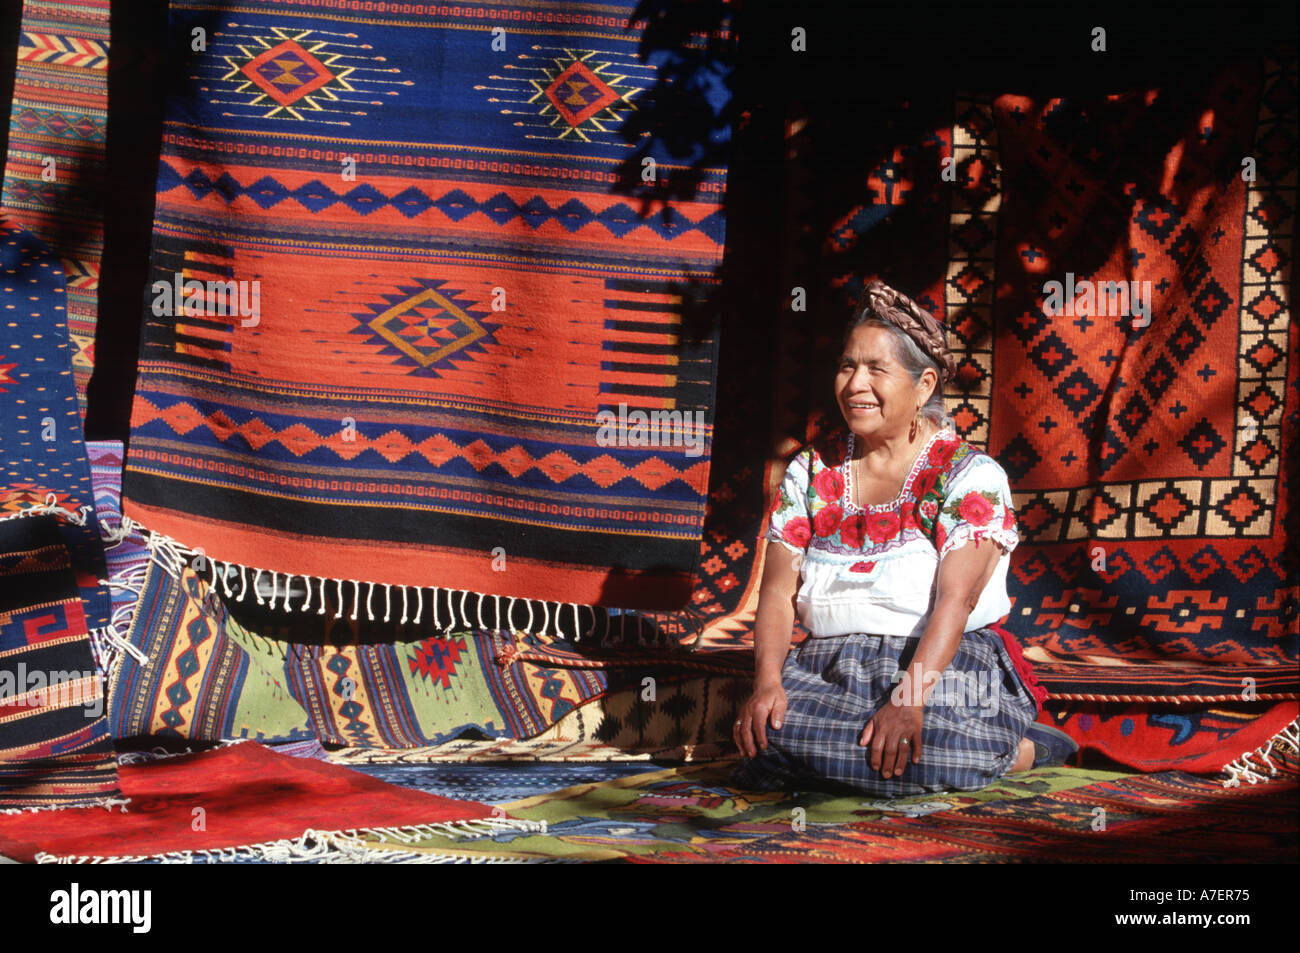 Mexico, Oaxaca, Teotitlan Del Valle. Displaying Zapotec Indian Rugs. (MR)